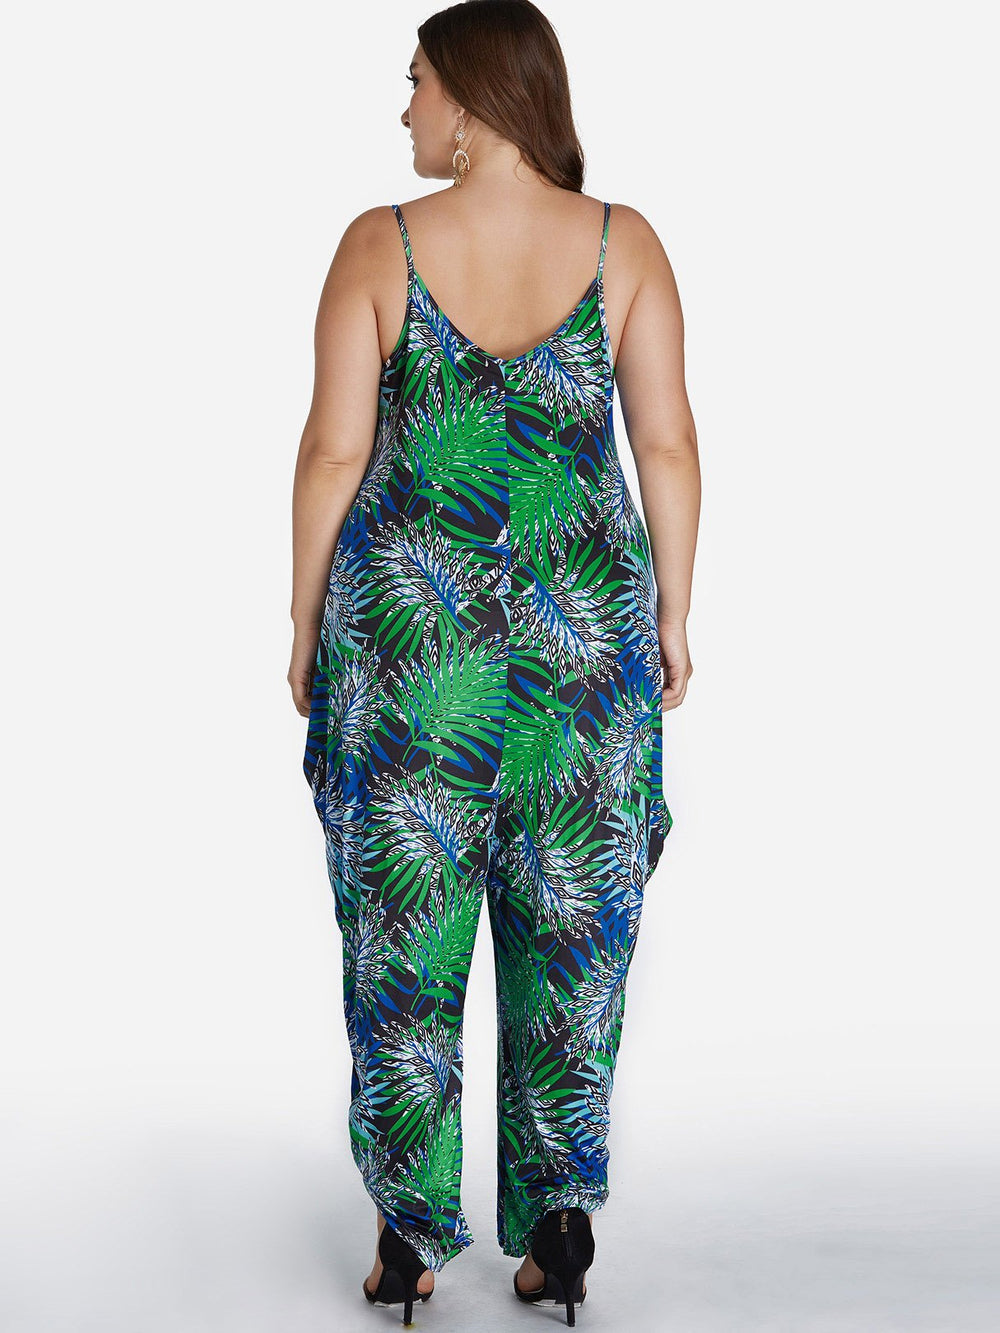 Ladies Sleeveless Plus Size Bottoms